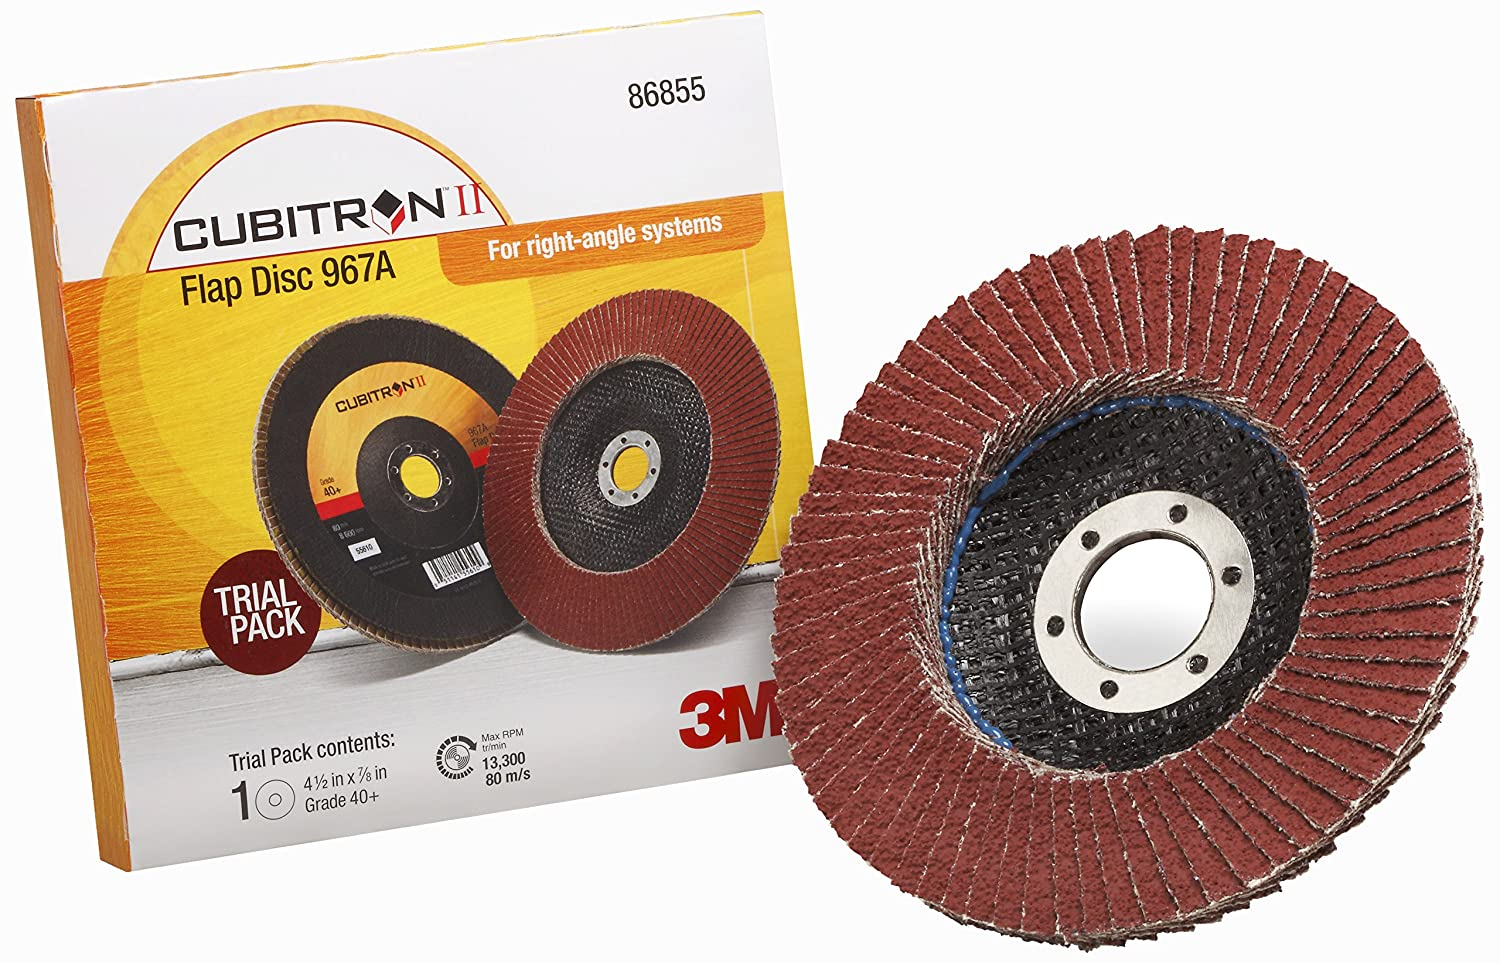 Trial Pack T27 4-1//2 in x 7//8 in 40 Y-weight 3M Cubitron II Flap Disc 967A